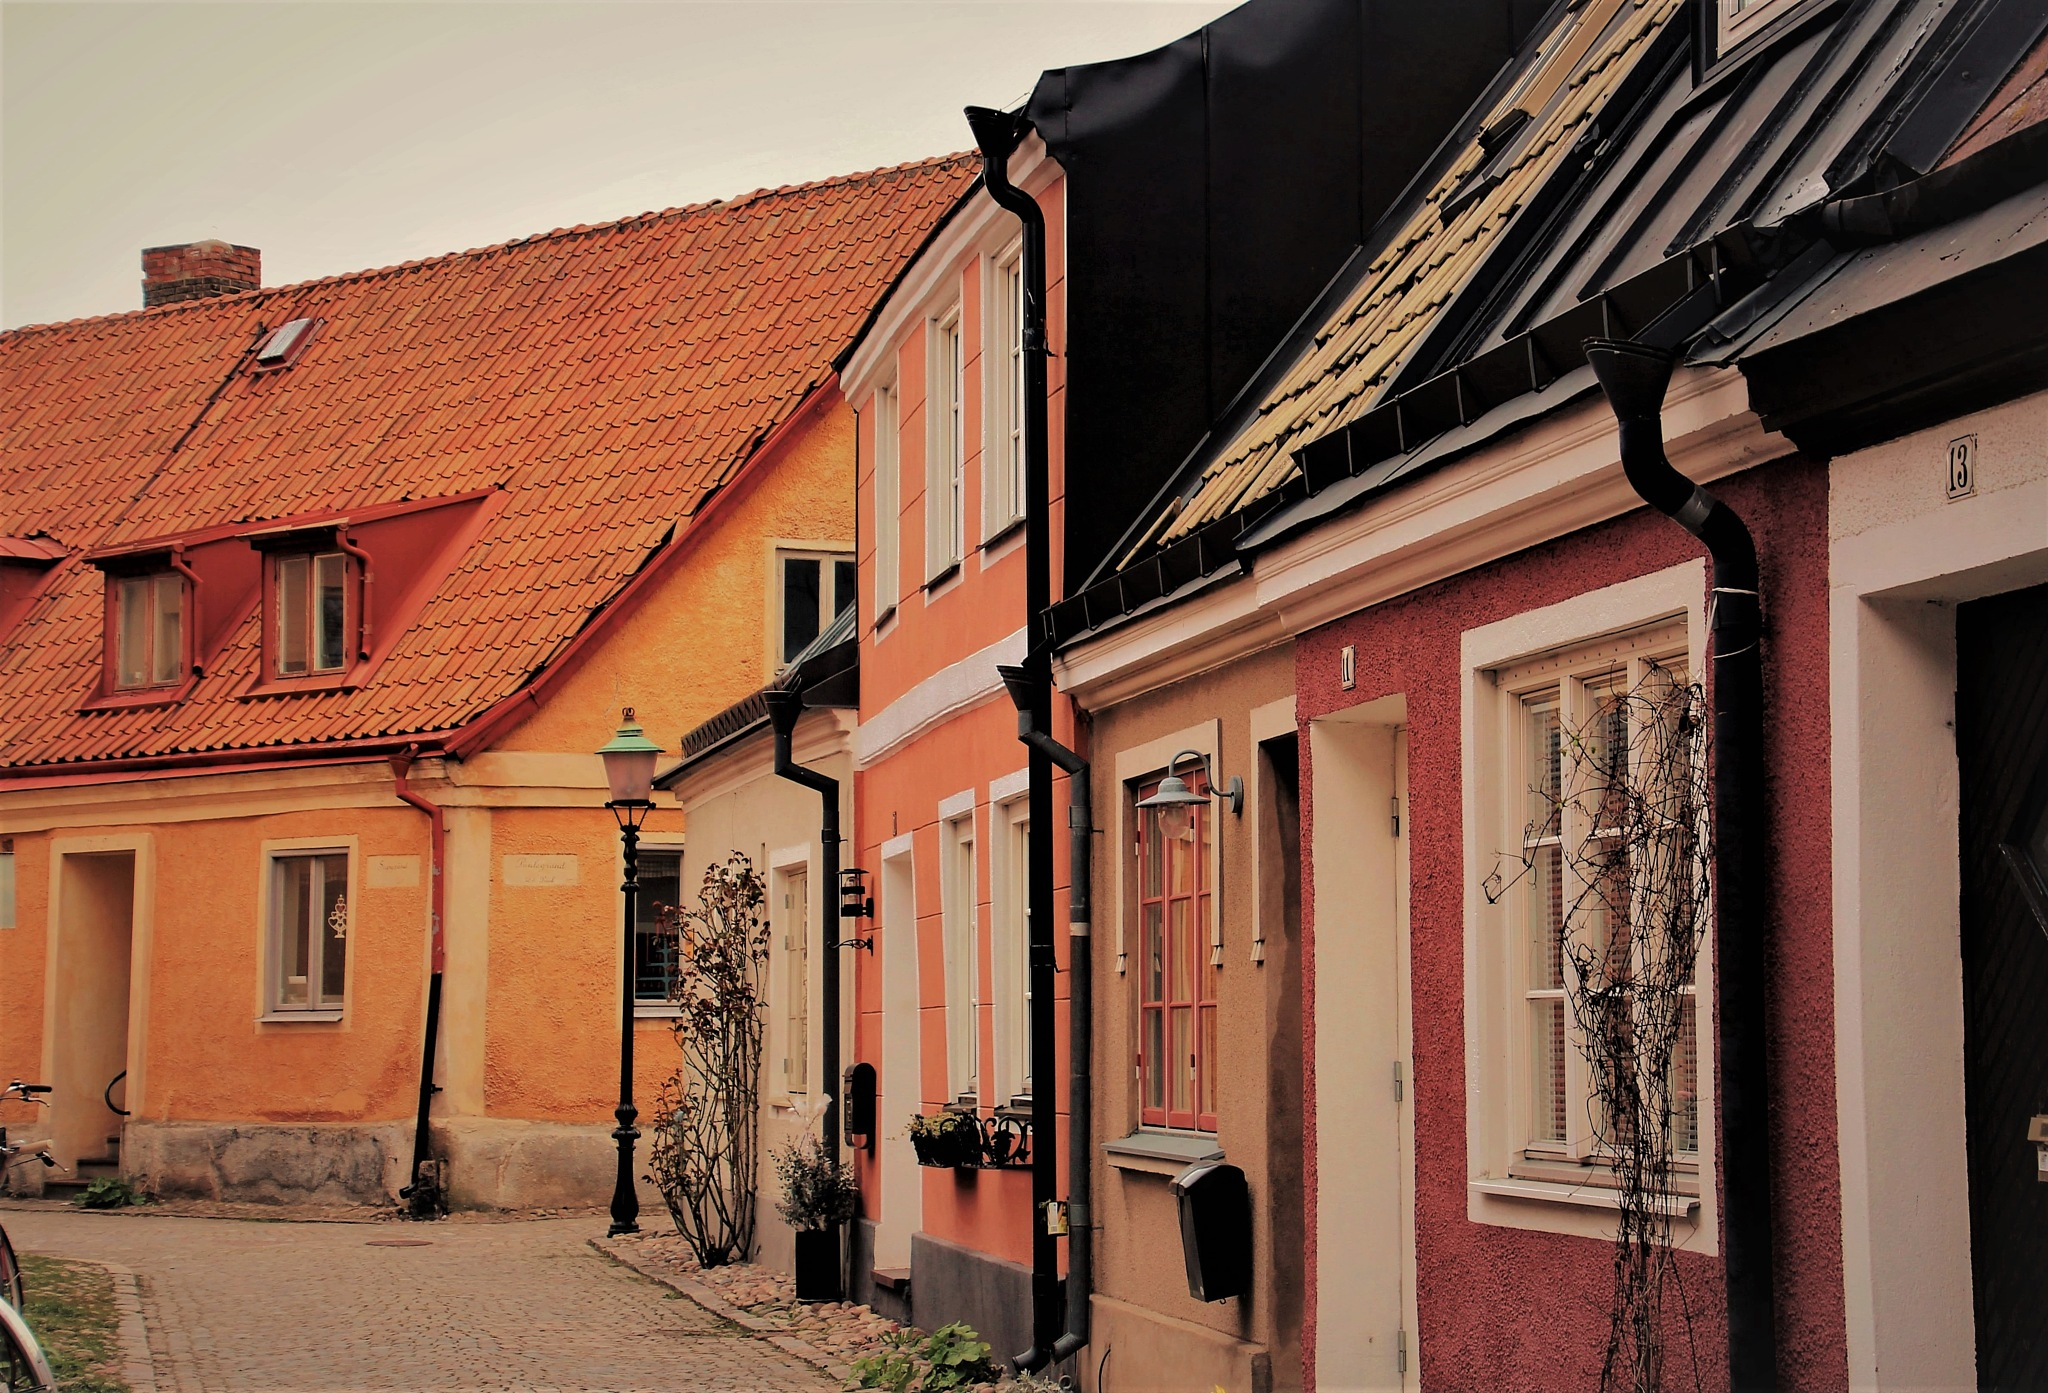 Olofs gränd. One of the small streets in my Hometown Ystad. by KerstinP.